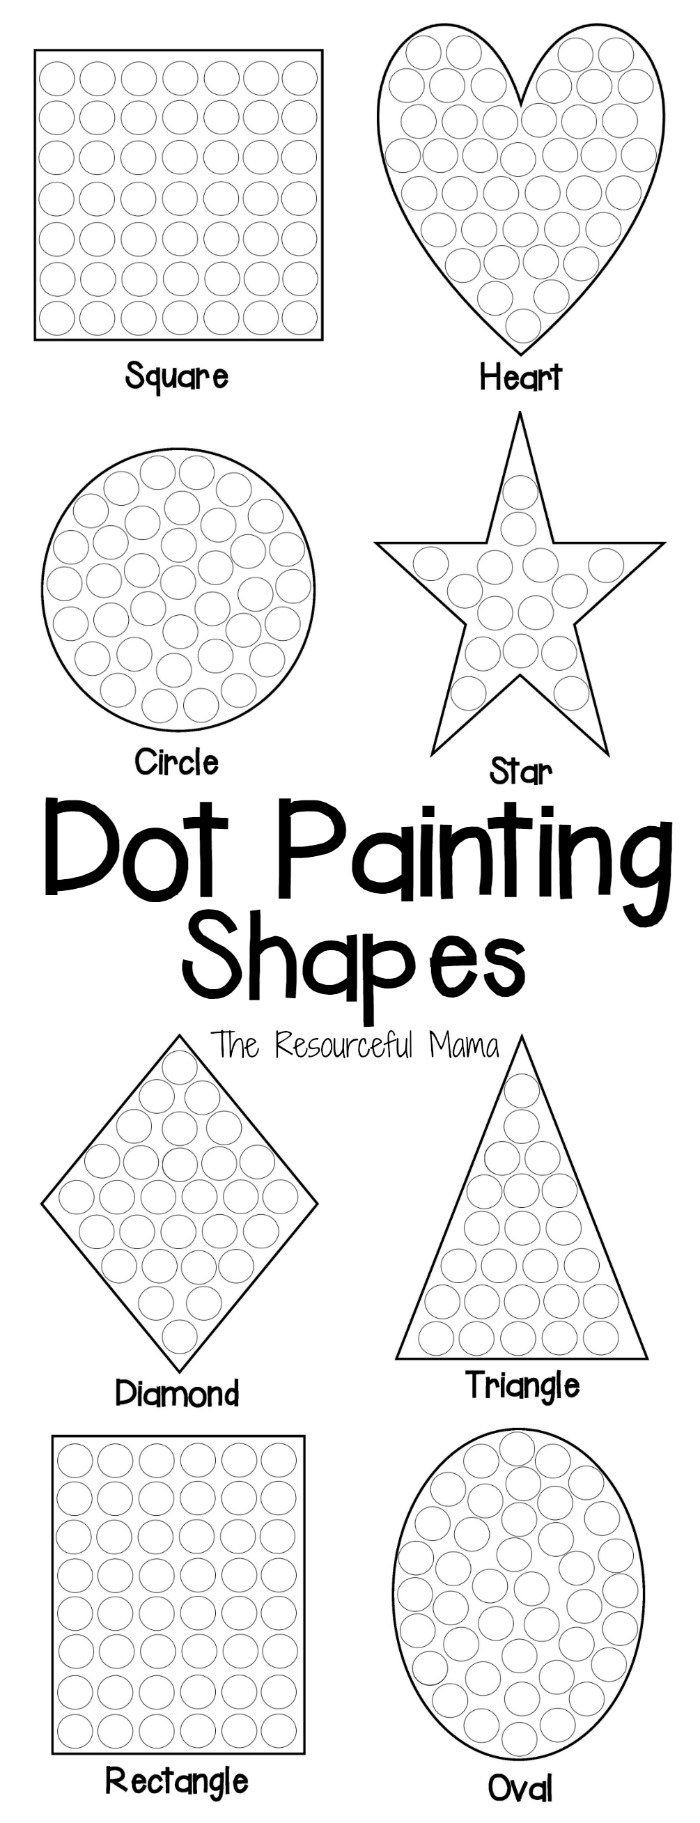 Dot to Dot Art Printables Shapes Dot Painting Free Printable